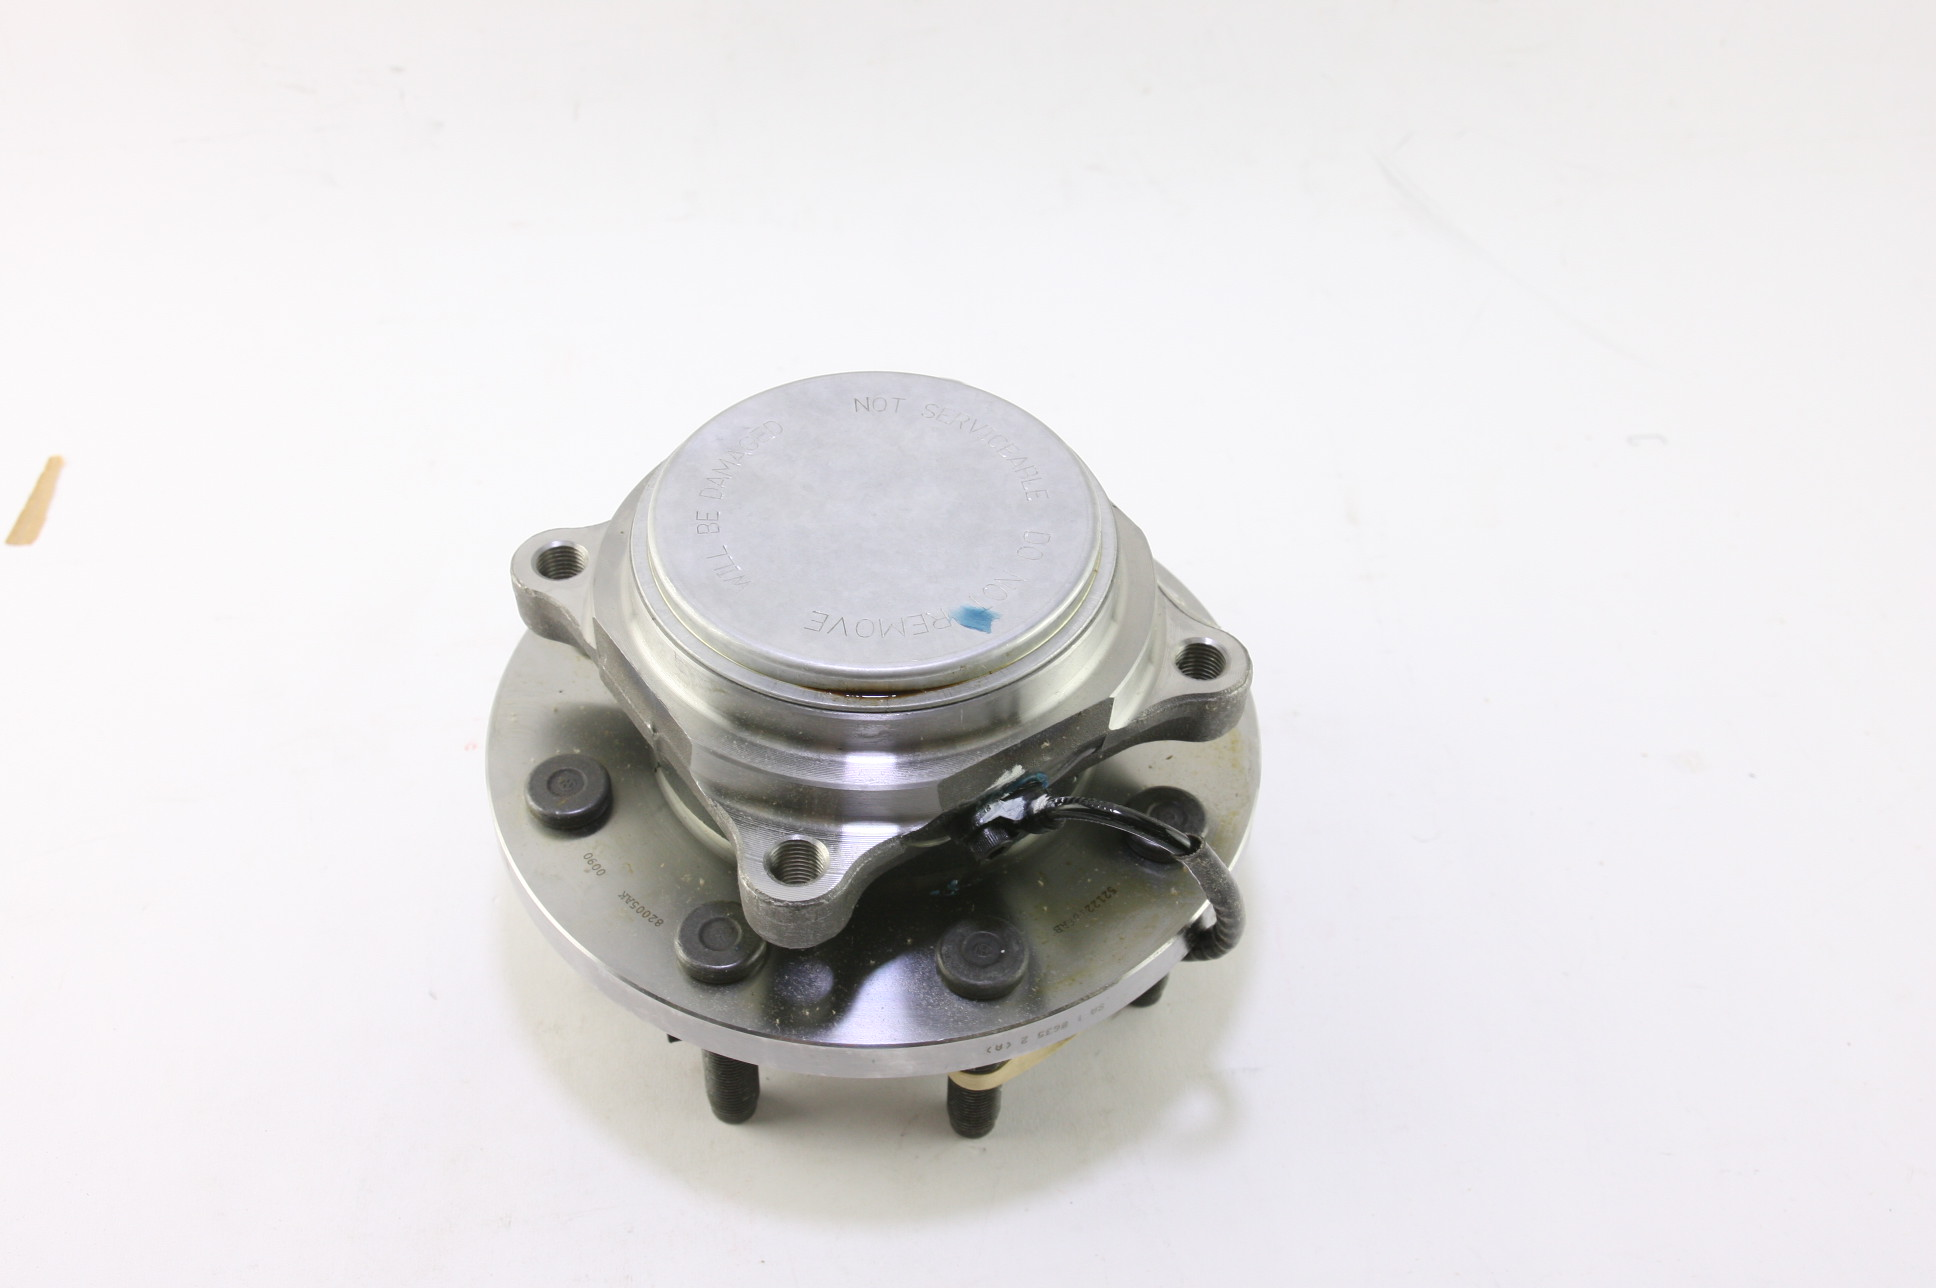 **** New Mopar OEM 52122186AB Disc Brake Hub and Bearing Fast Free Shipping - image 7